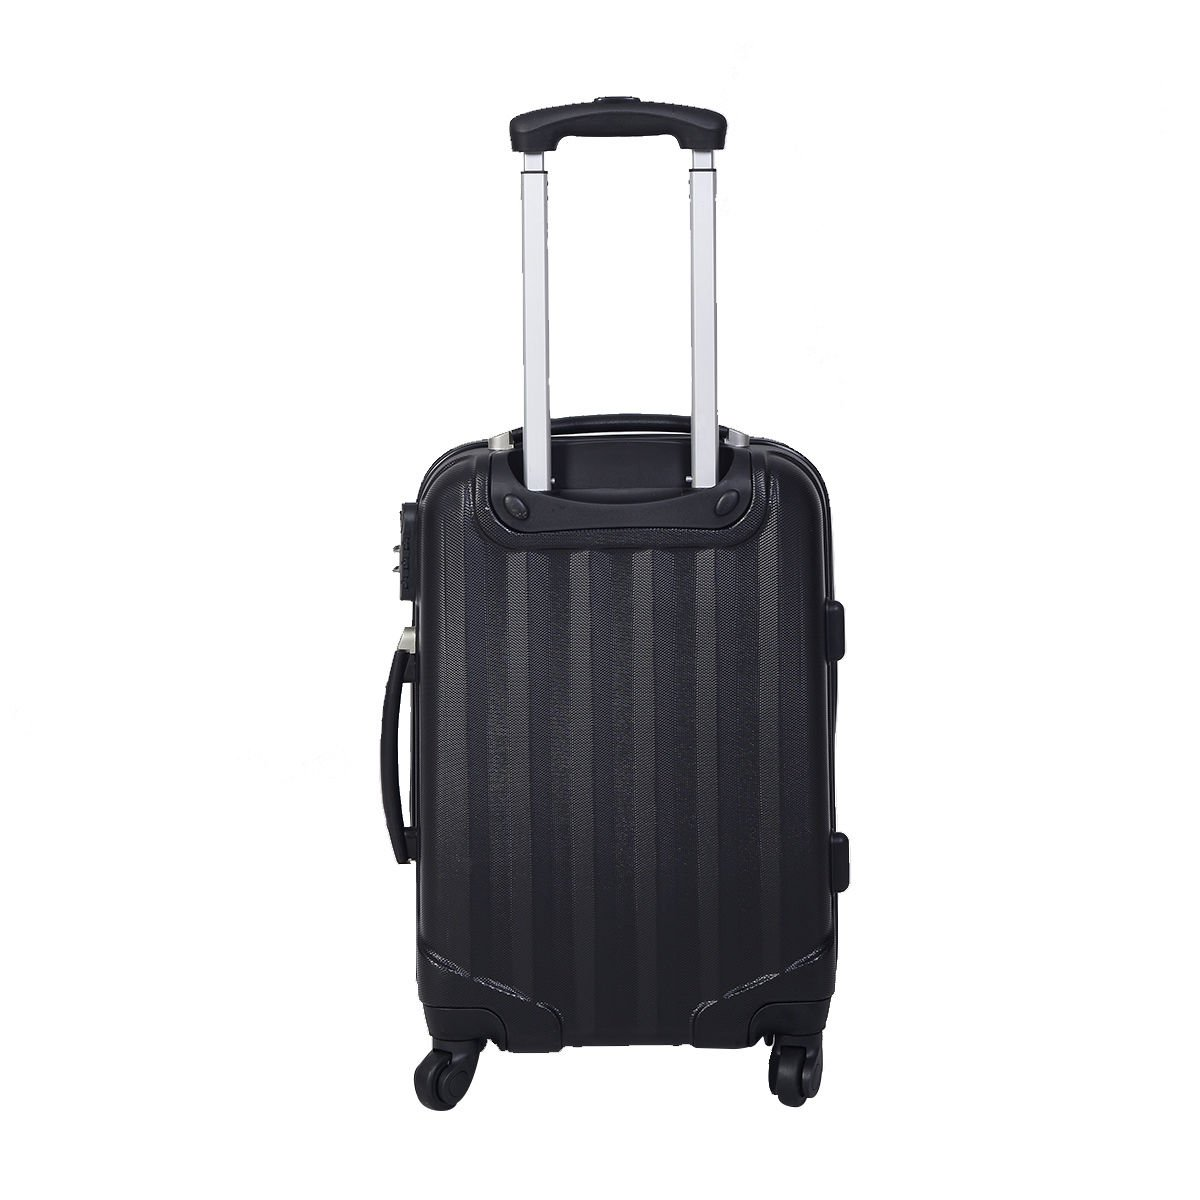 GLOBALWAY 3 Pcs Luggage Travel Set Bag ABS Trolley Suitcase w//TSA Lock Black 20 24 28 Standard Size US Shipping!